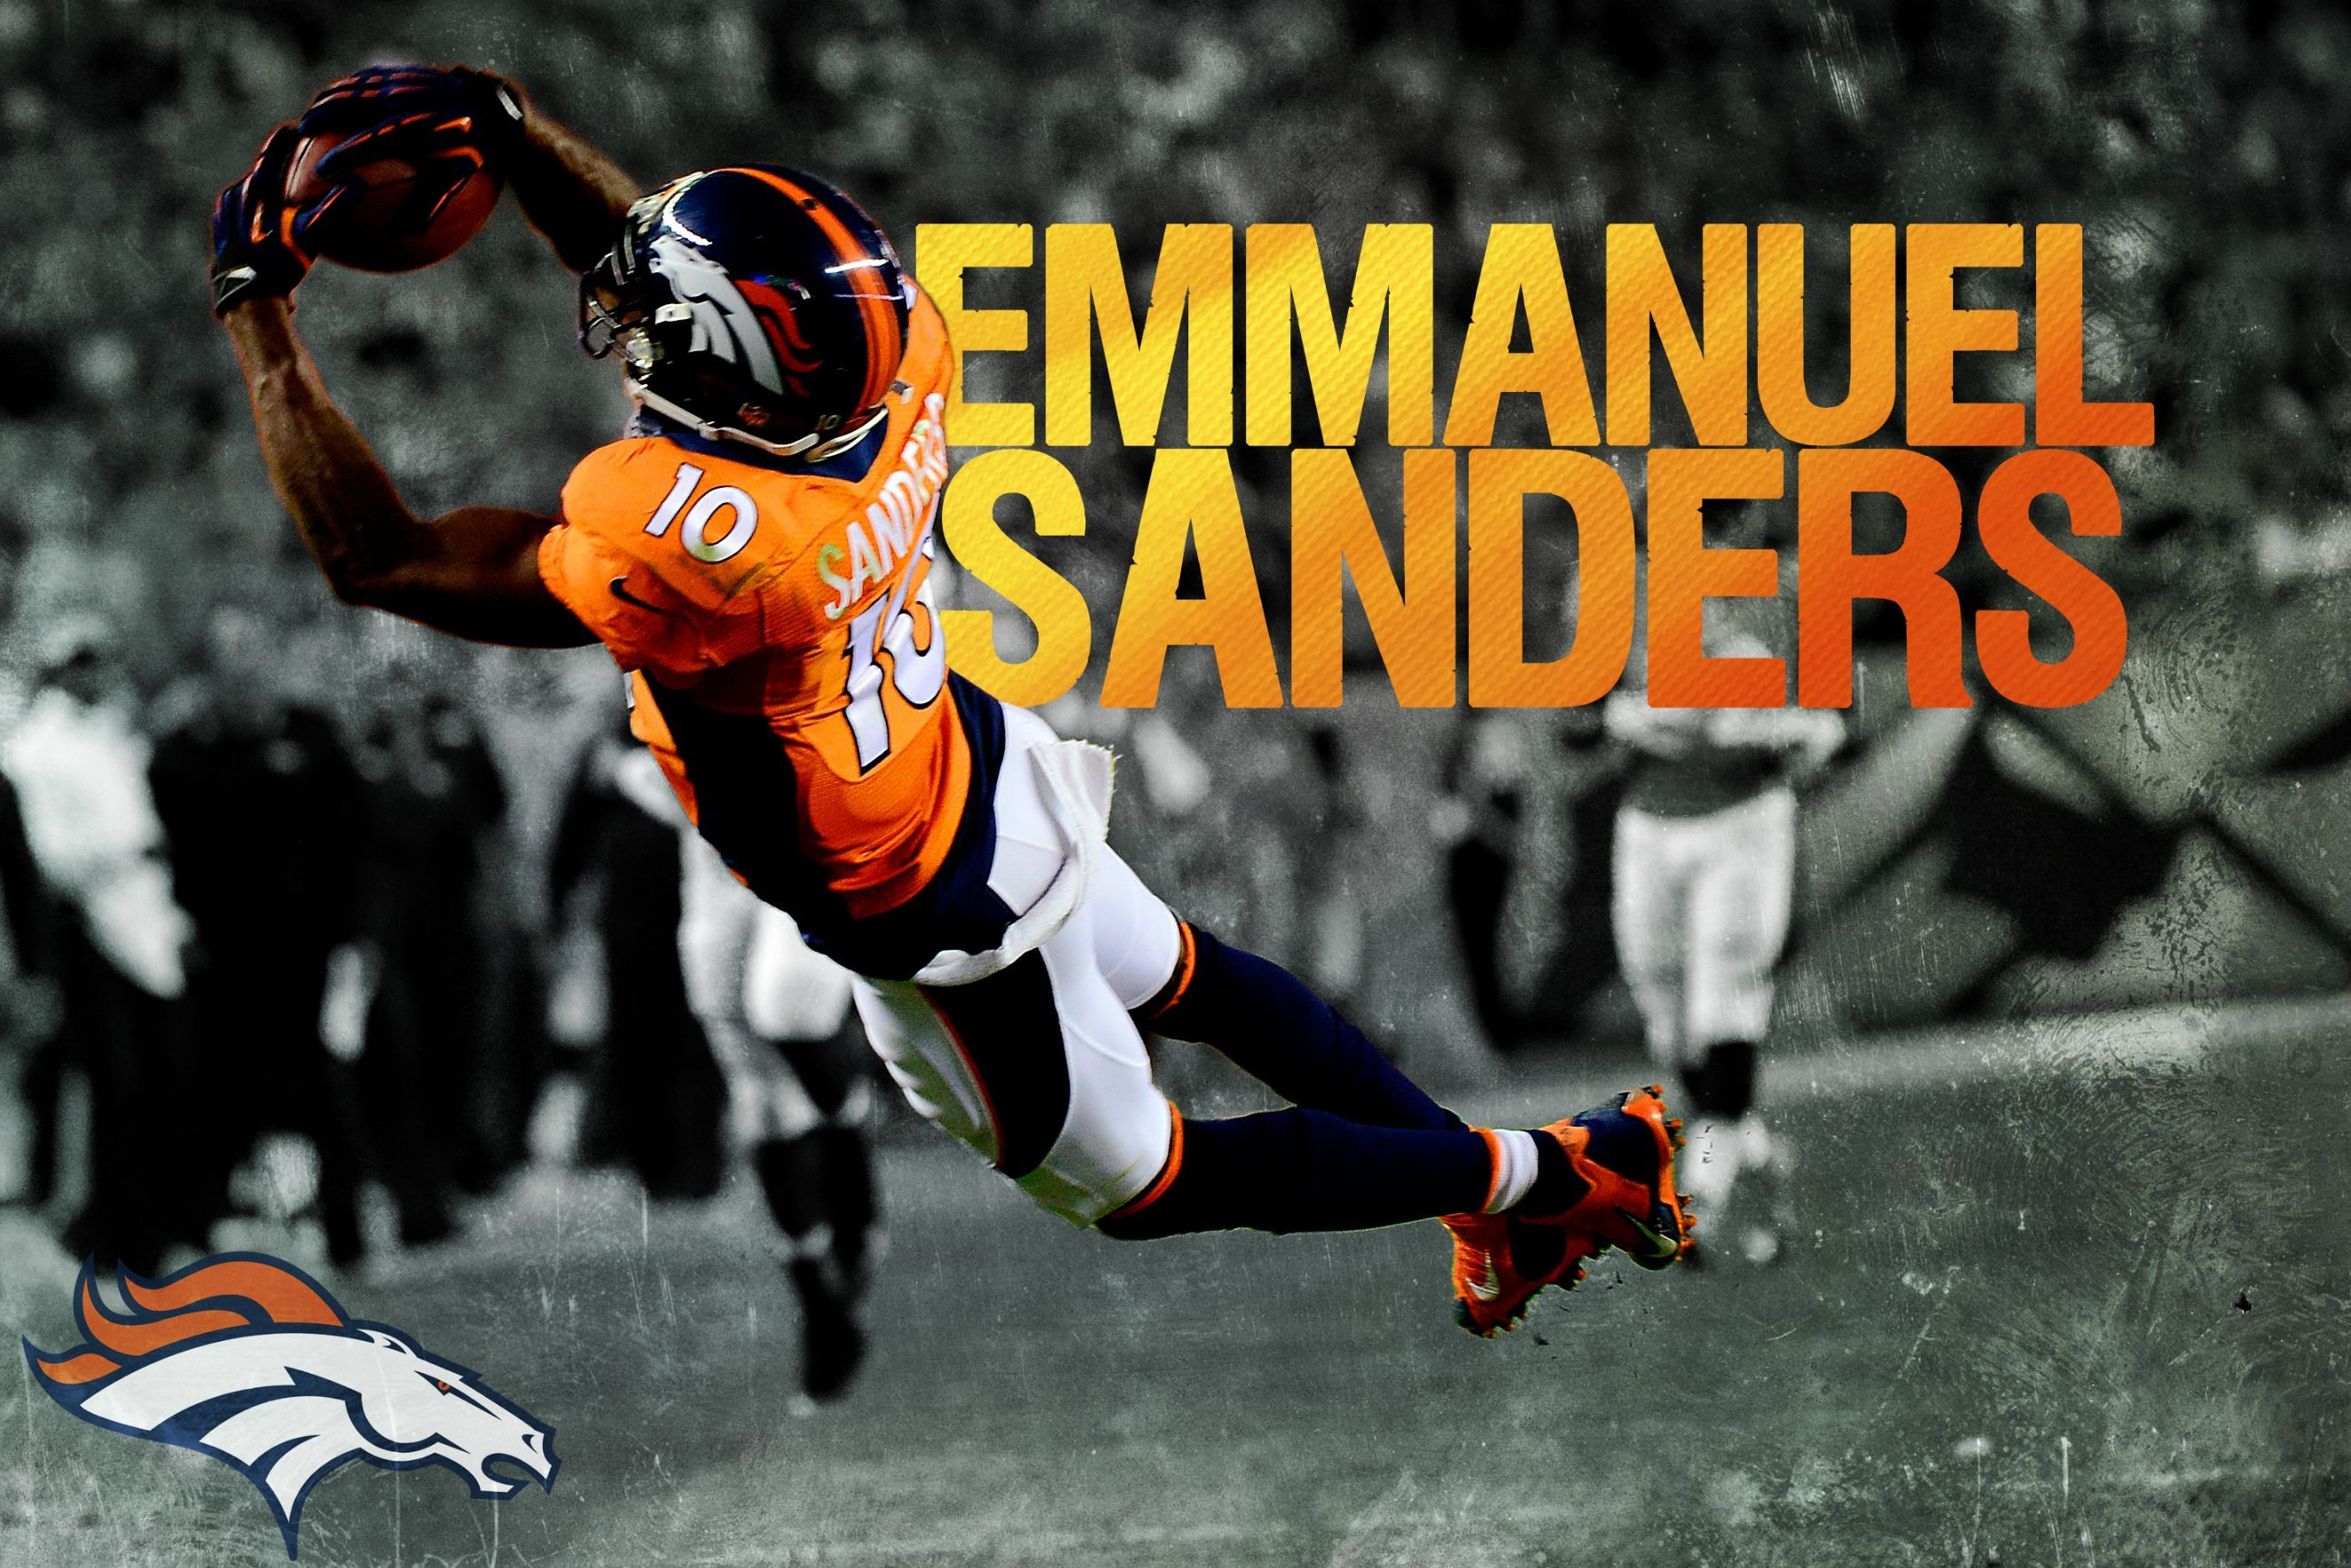 Sports wallpapers on twitter emmanuel sanders search results for emmanuel sanders wallpapers adorable wallpapers voltagebd Image collections